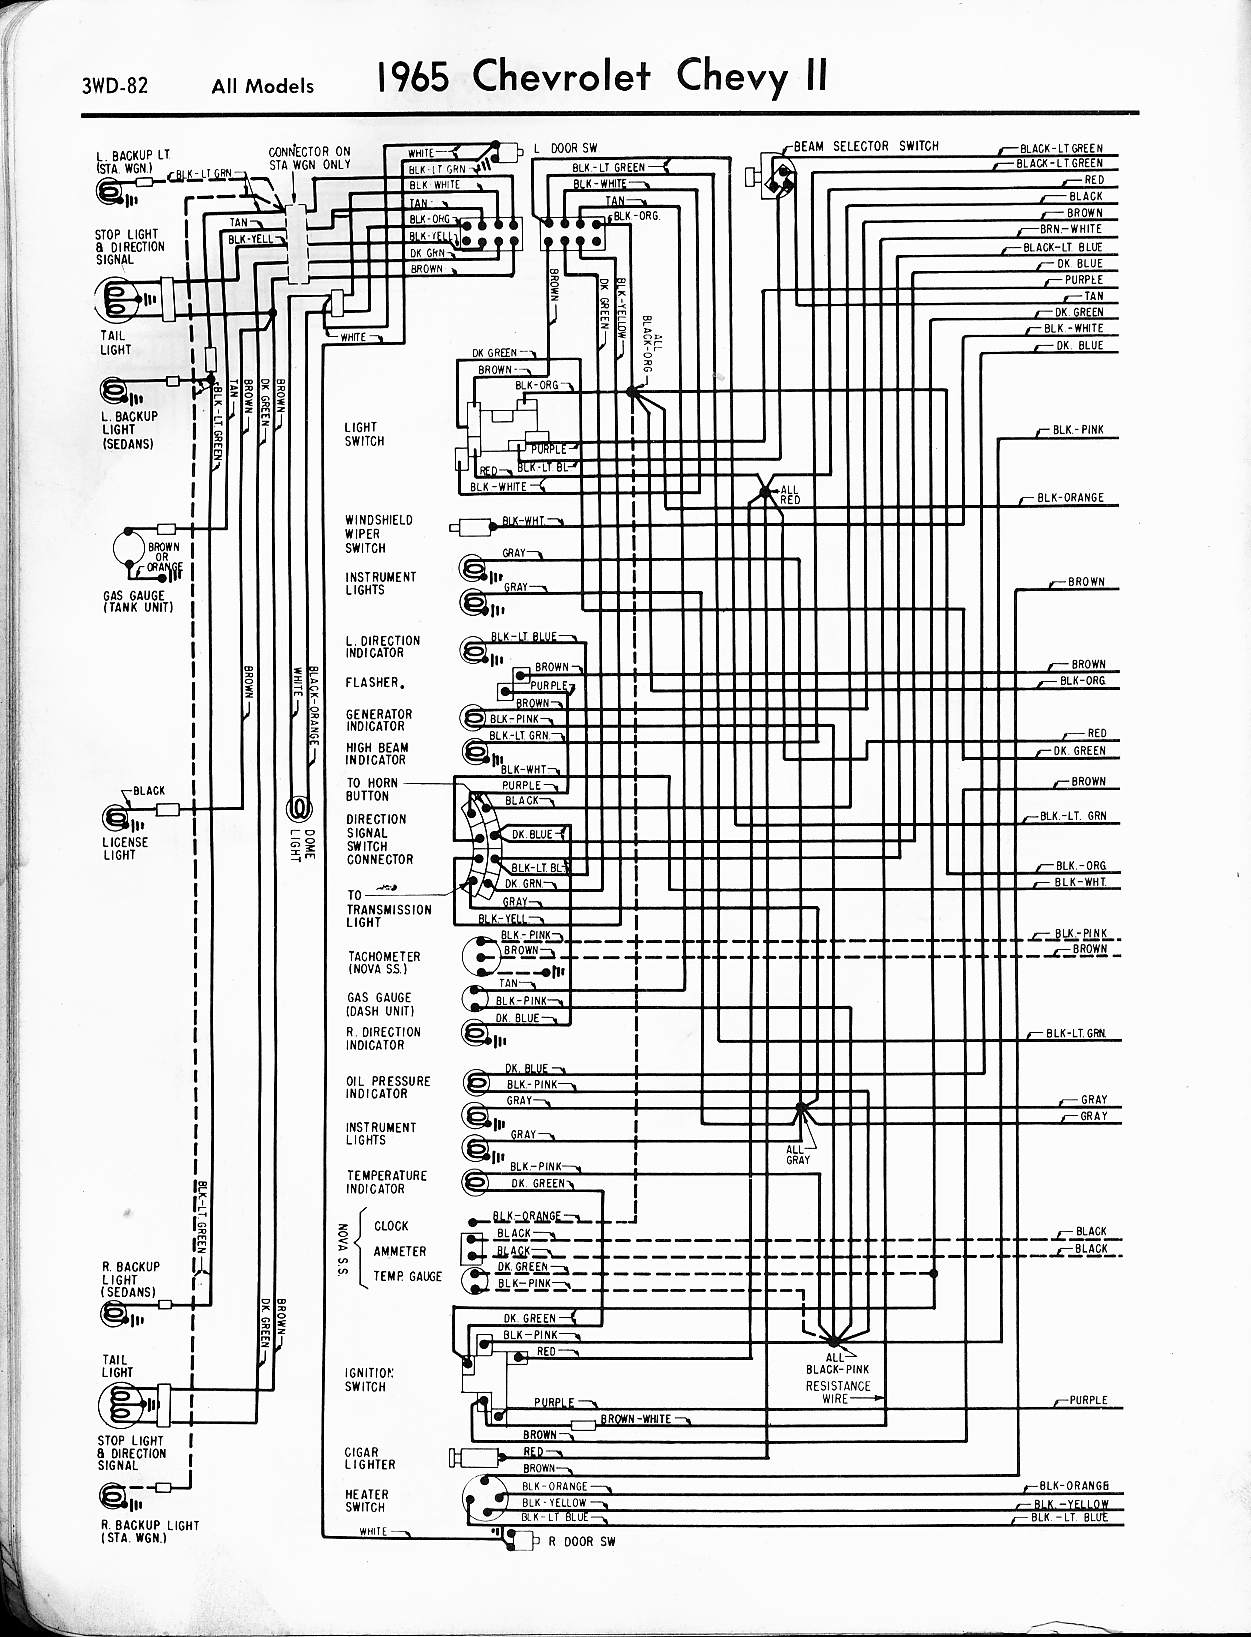 MWireChev65_3WD 082 chevrolet wiring schematics chevrolet wiring diagrams instruction chevy wiring schematics at fashall.co